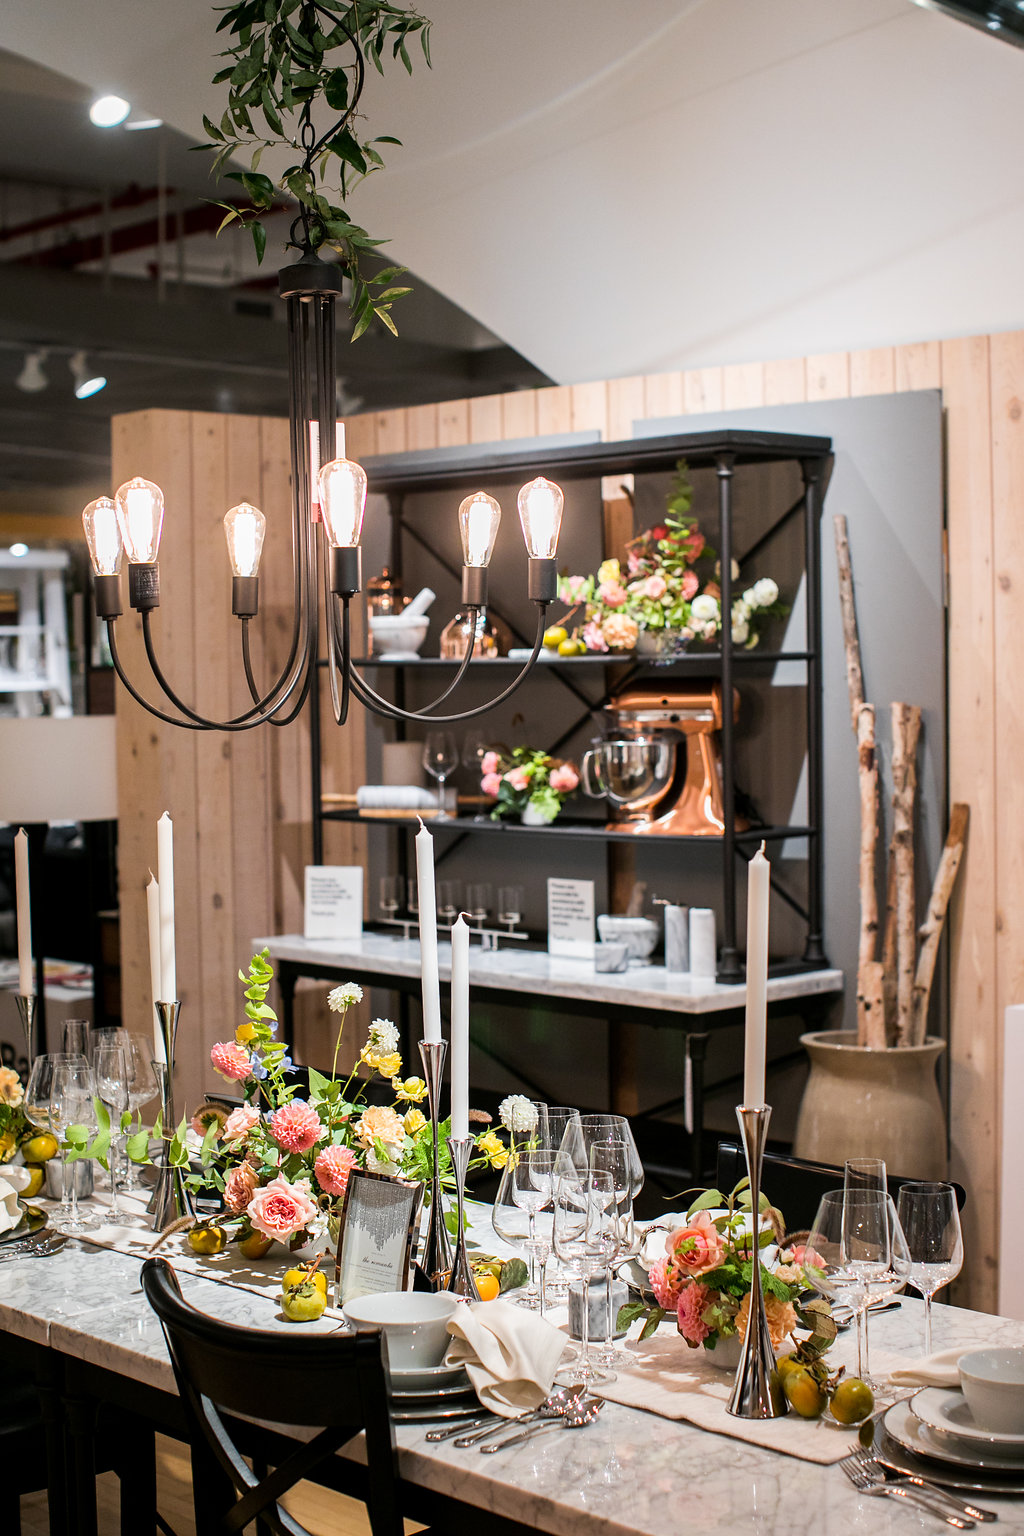 crate-and-barrel-cocktails-couture-jove-meyer-events-031.jpg